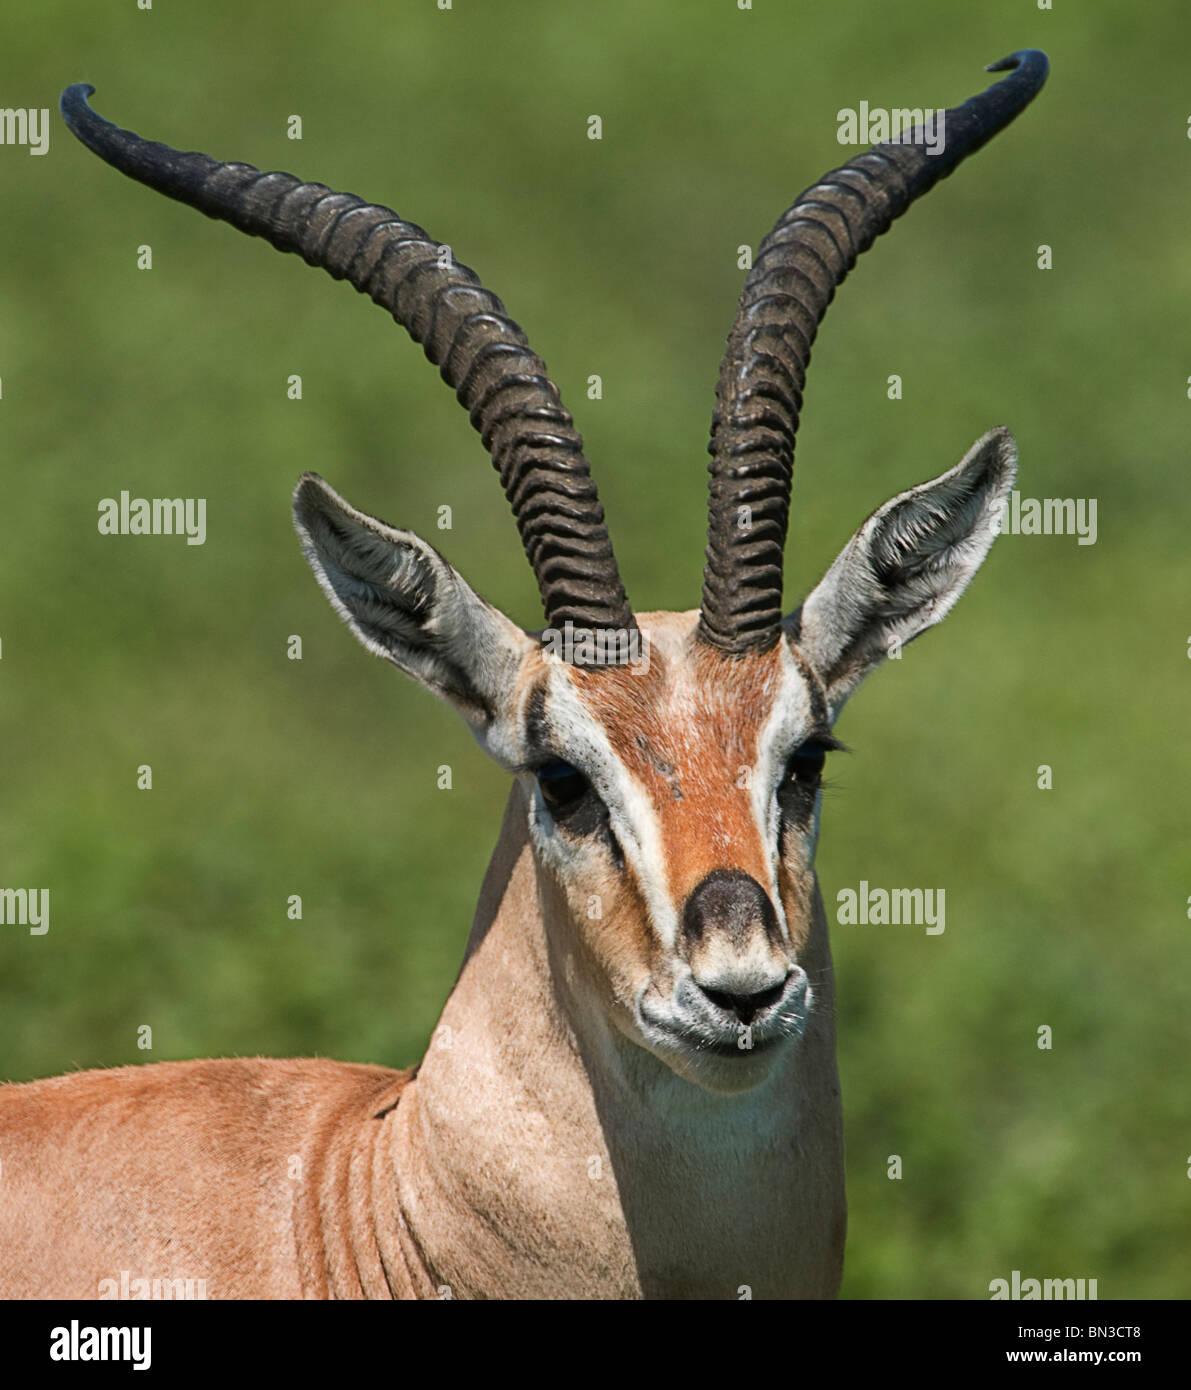 Grant's gazelle, photographed in Serengeti National Park, Tanzania, Africa - Stock Image